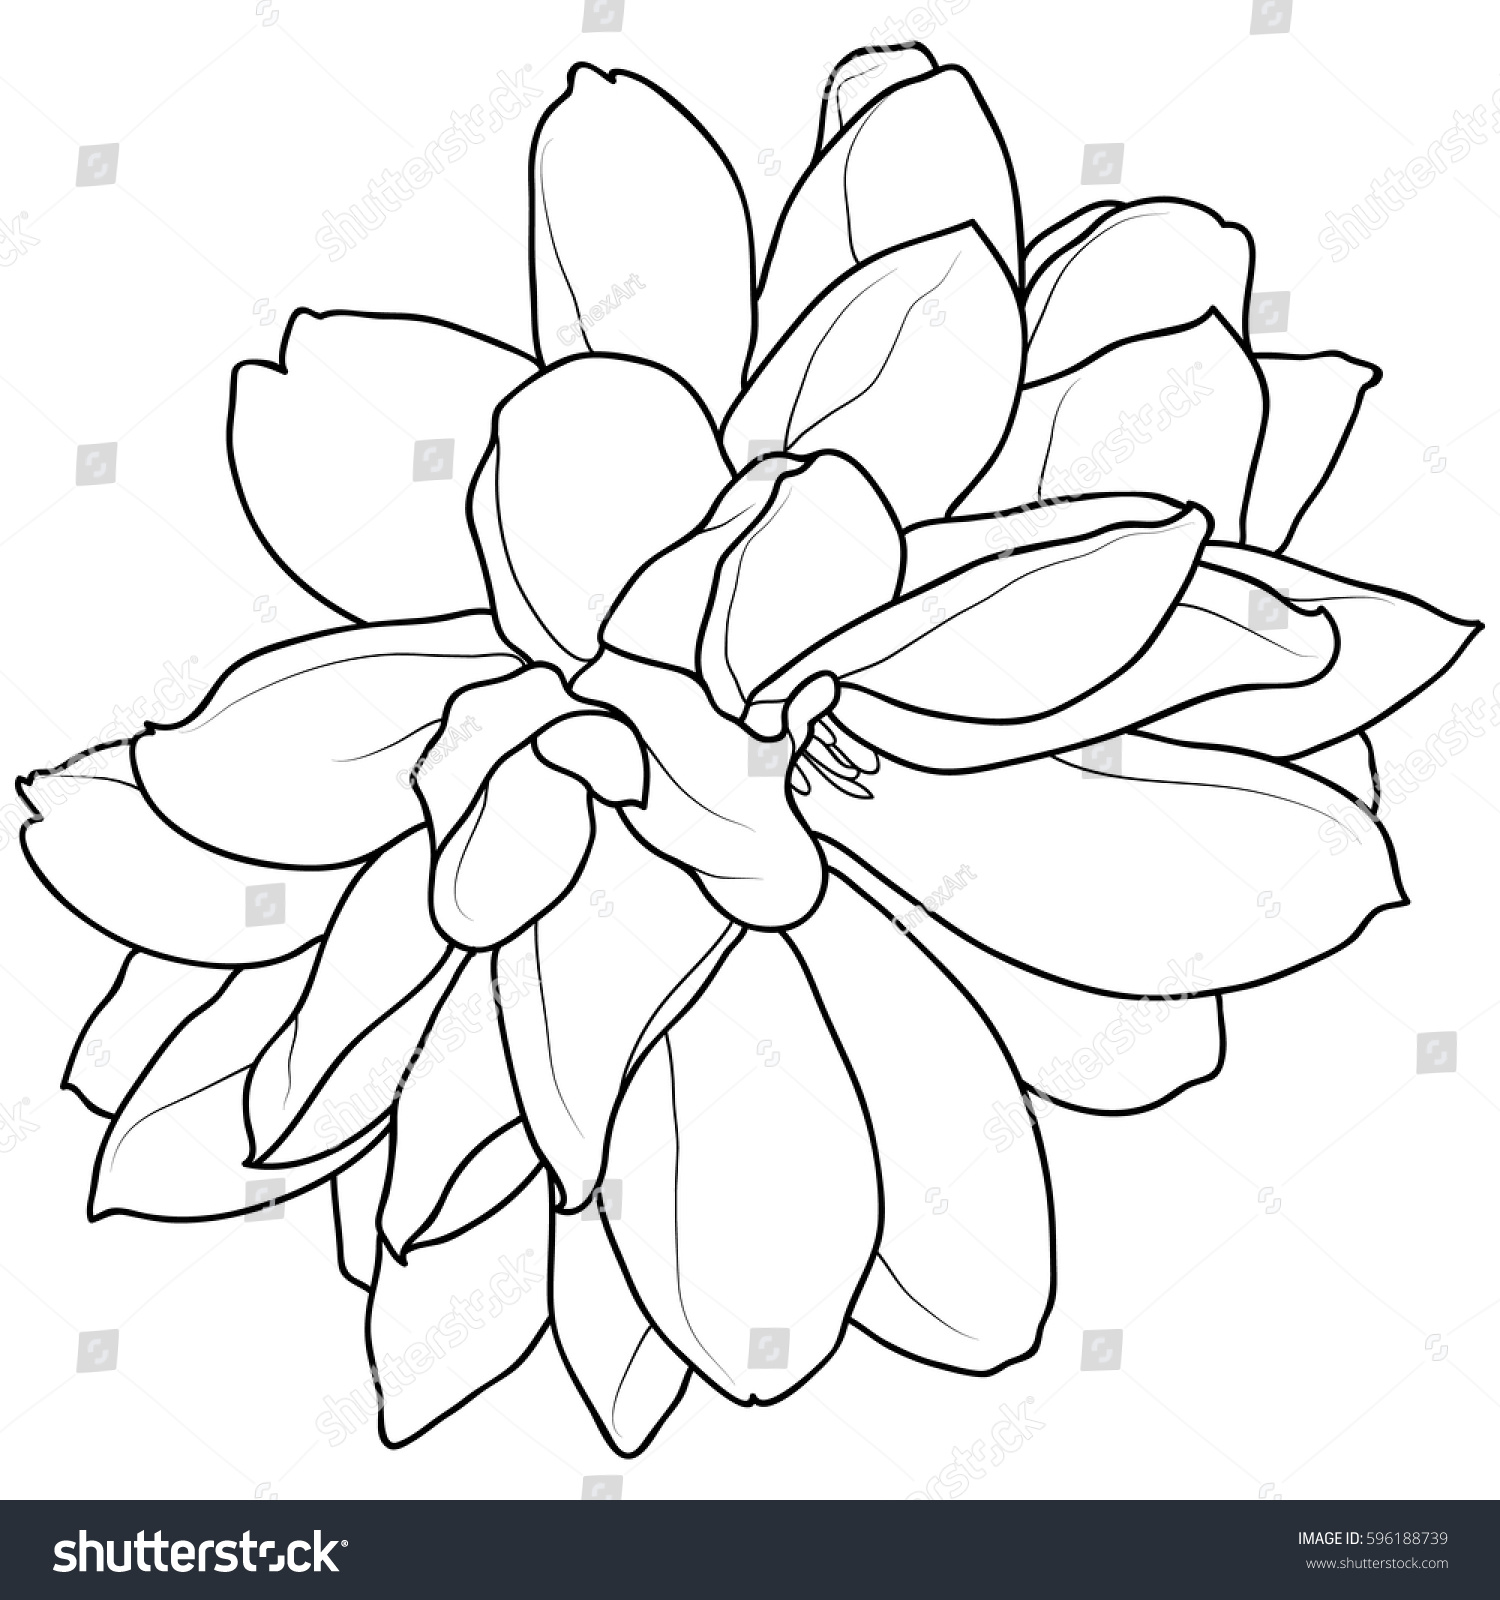 Hand Drawn Black White Flower Outline Stock Vector Royalty Free